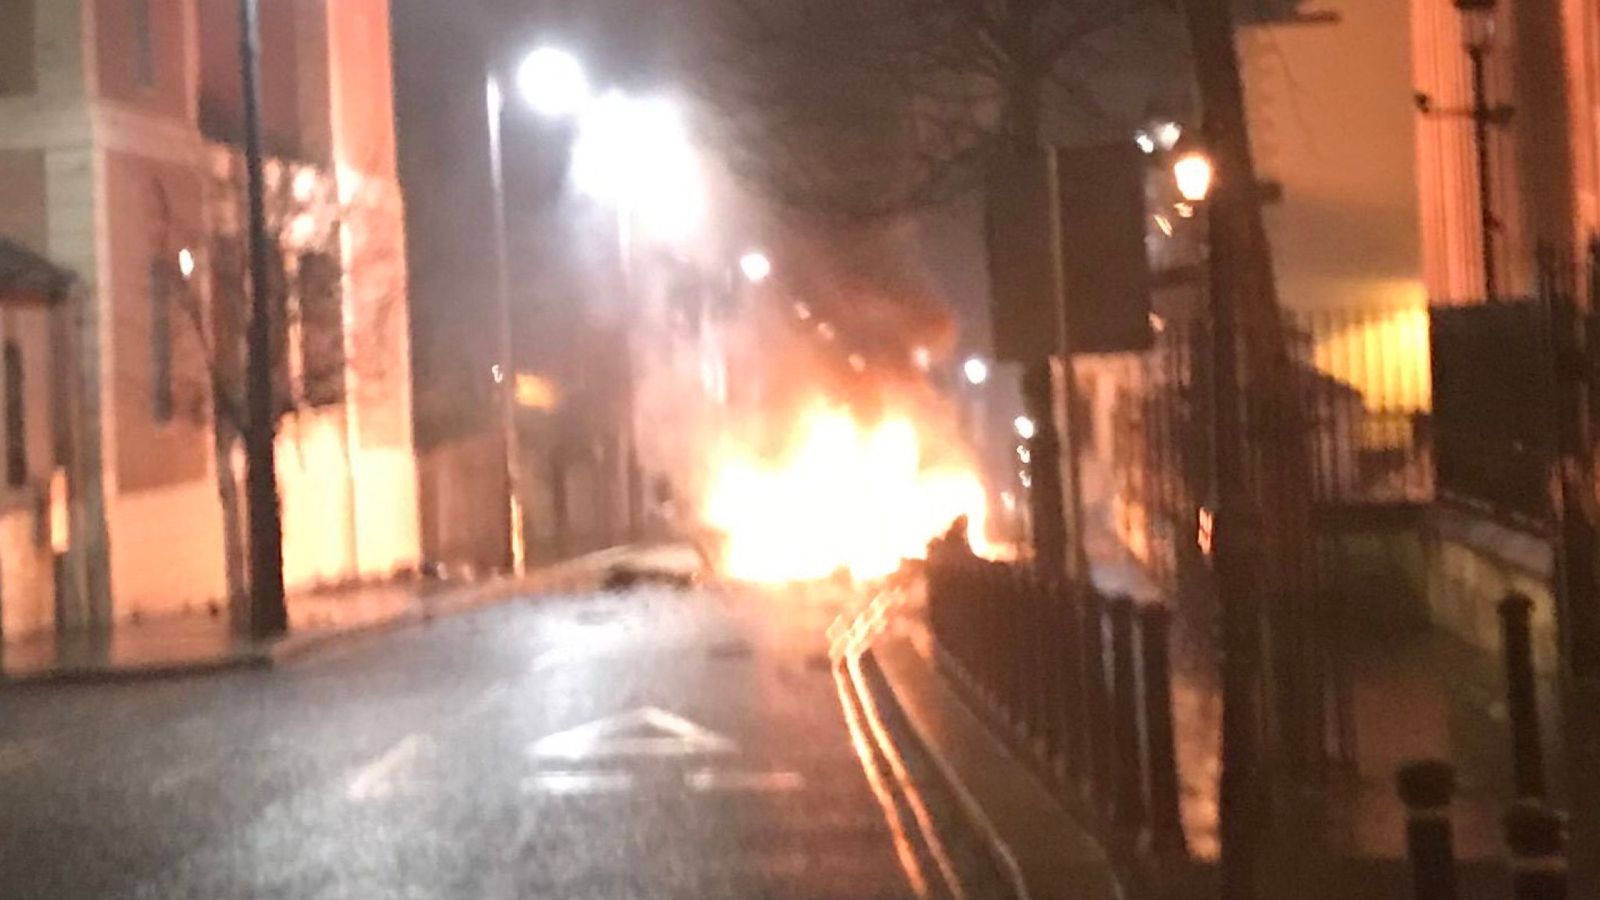 Suspected car bomb explodes outside Londonderry court house